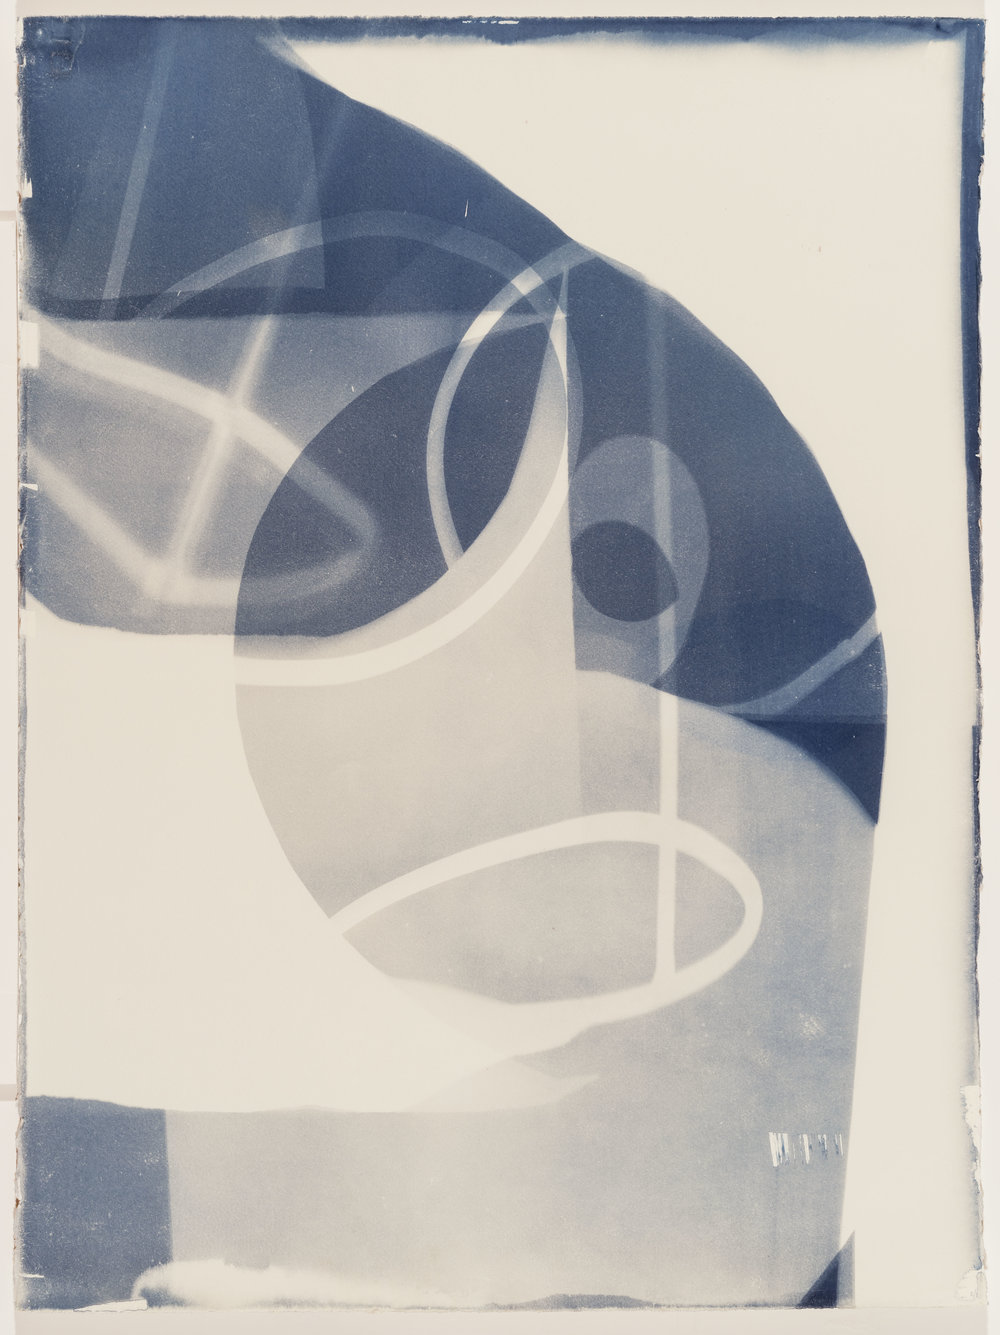 Harwood_Cyanotype_30x22_$500.jpg